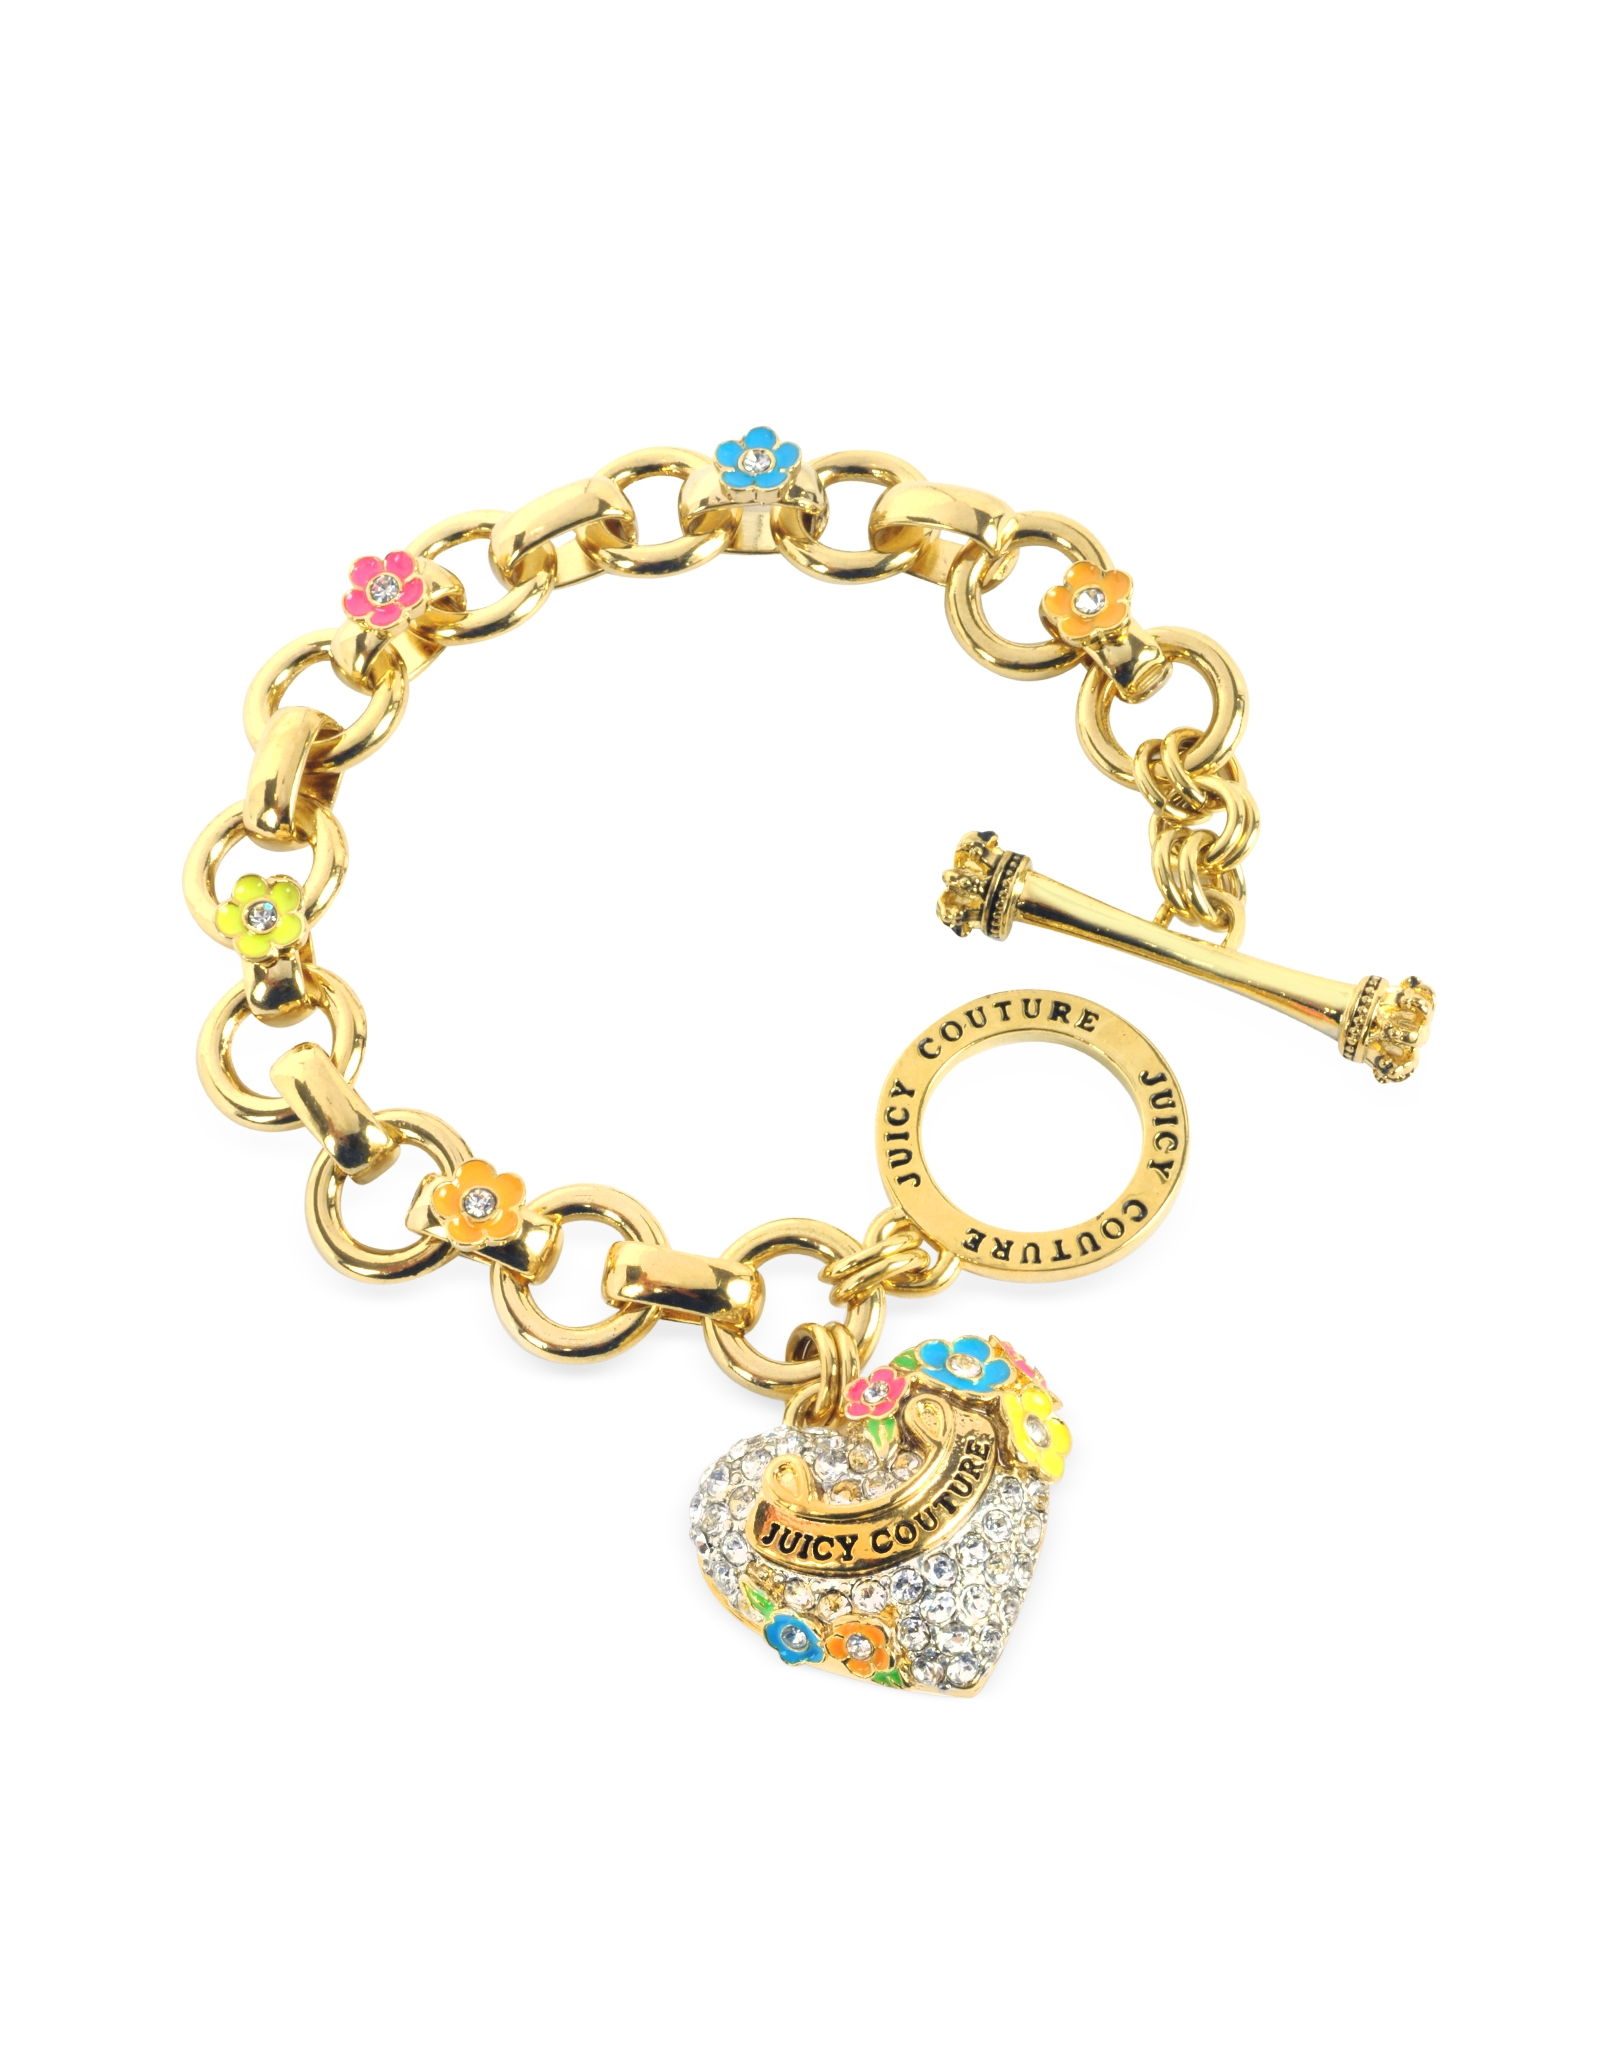 Lyst - Juicy couture Pave Heart and Flower Charm Bracelet ...